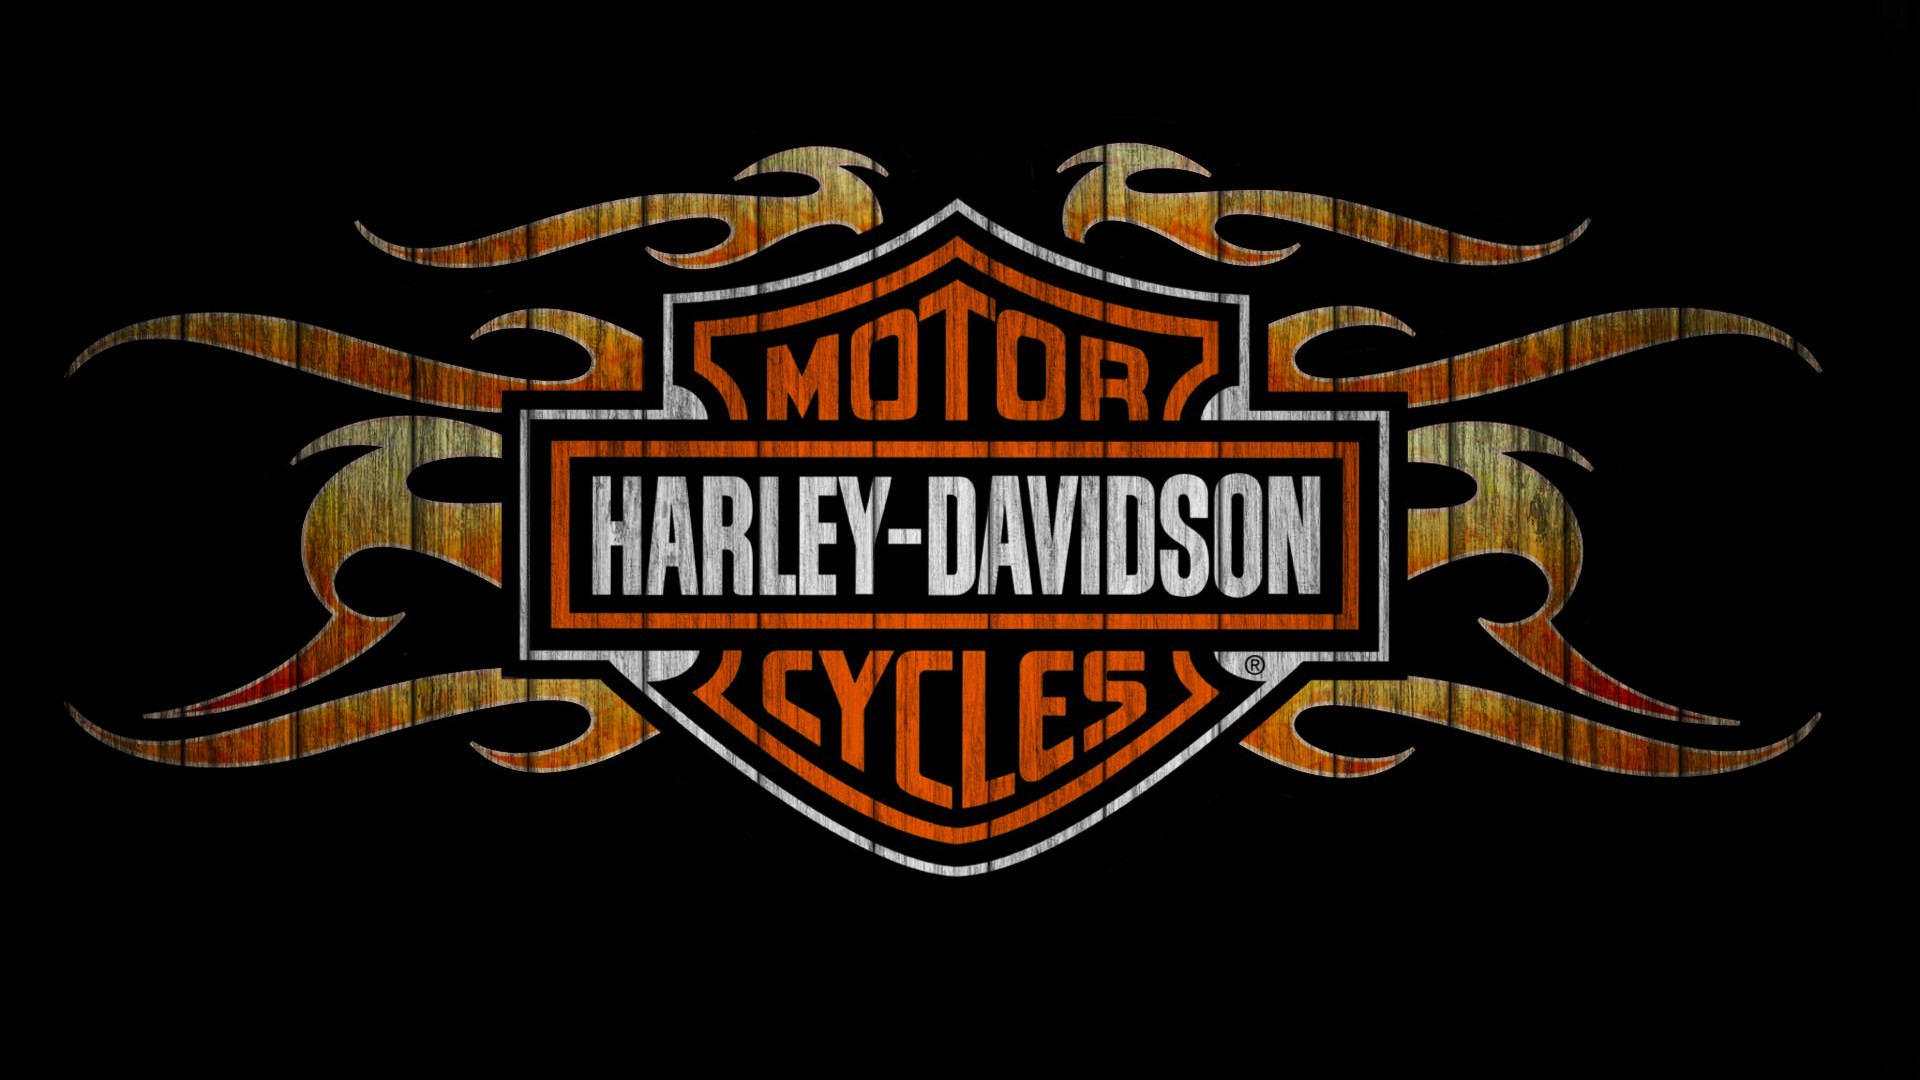 harley davidson logo wallpaper. Black Bedroom Furniture Sets. Home Design Ideas